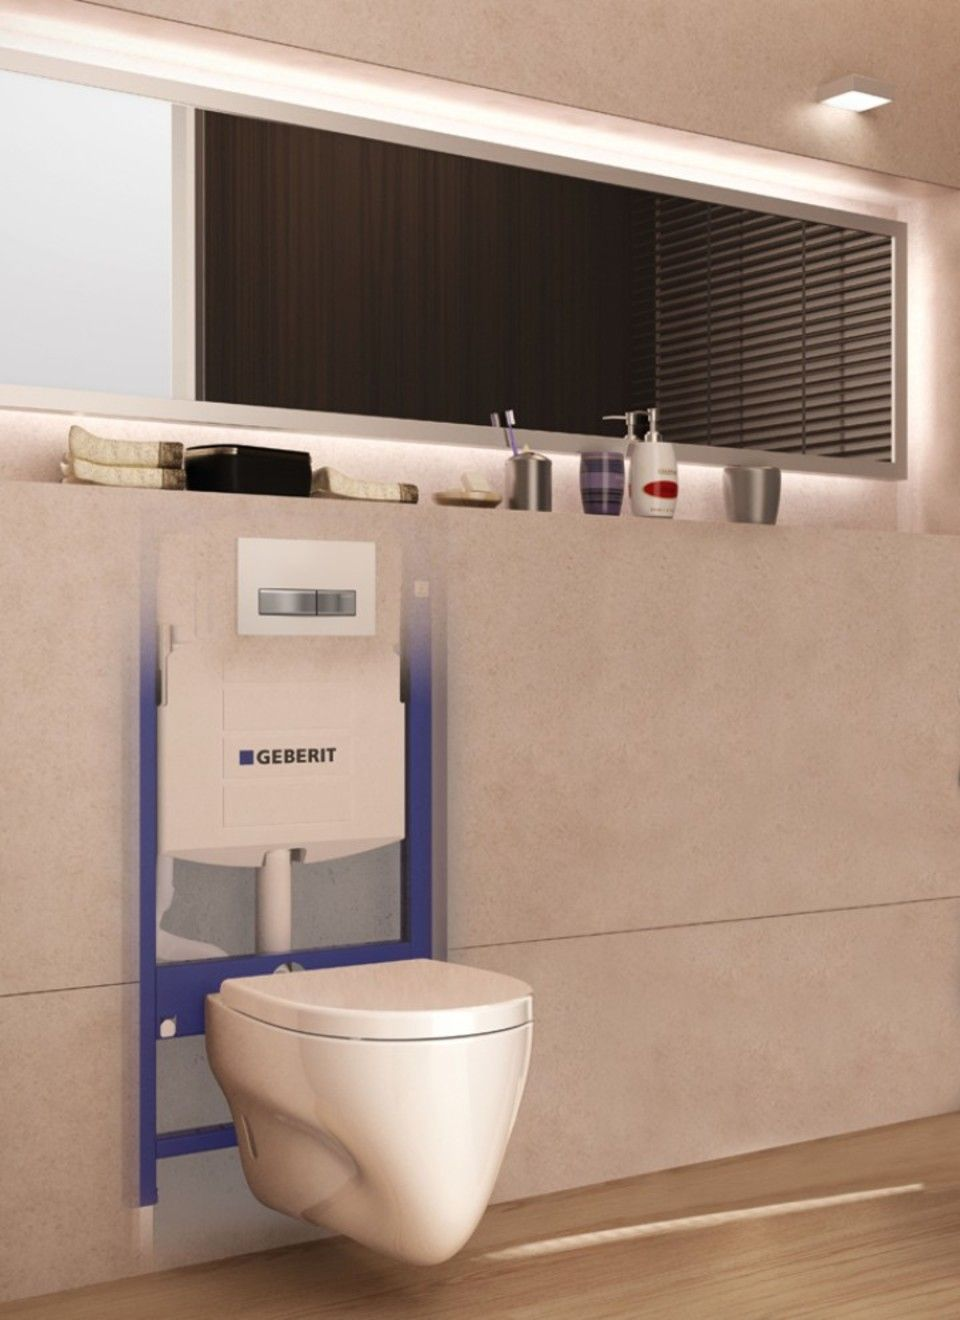 Geberit In Wall Flush Toilet Tank System For Wall Hung Toilet Concealed Cistern With Sigma50 Flush Plate Wall Hung Toilet Concealed Cistern Toilet Design